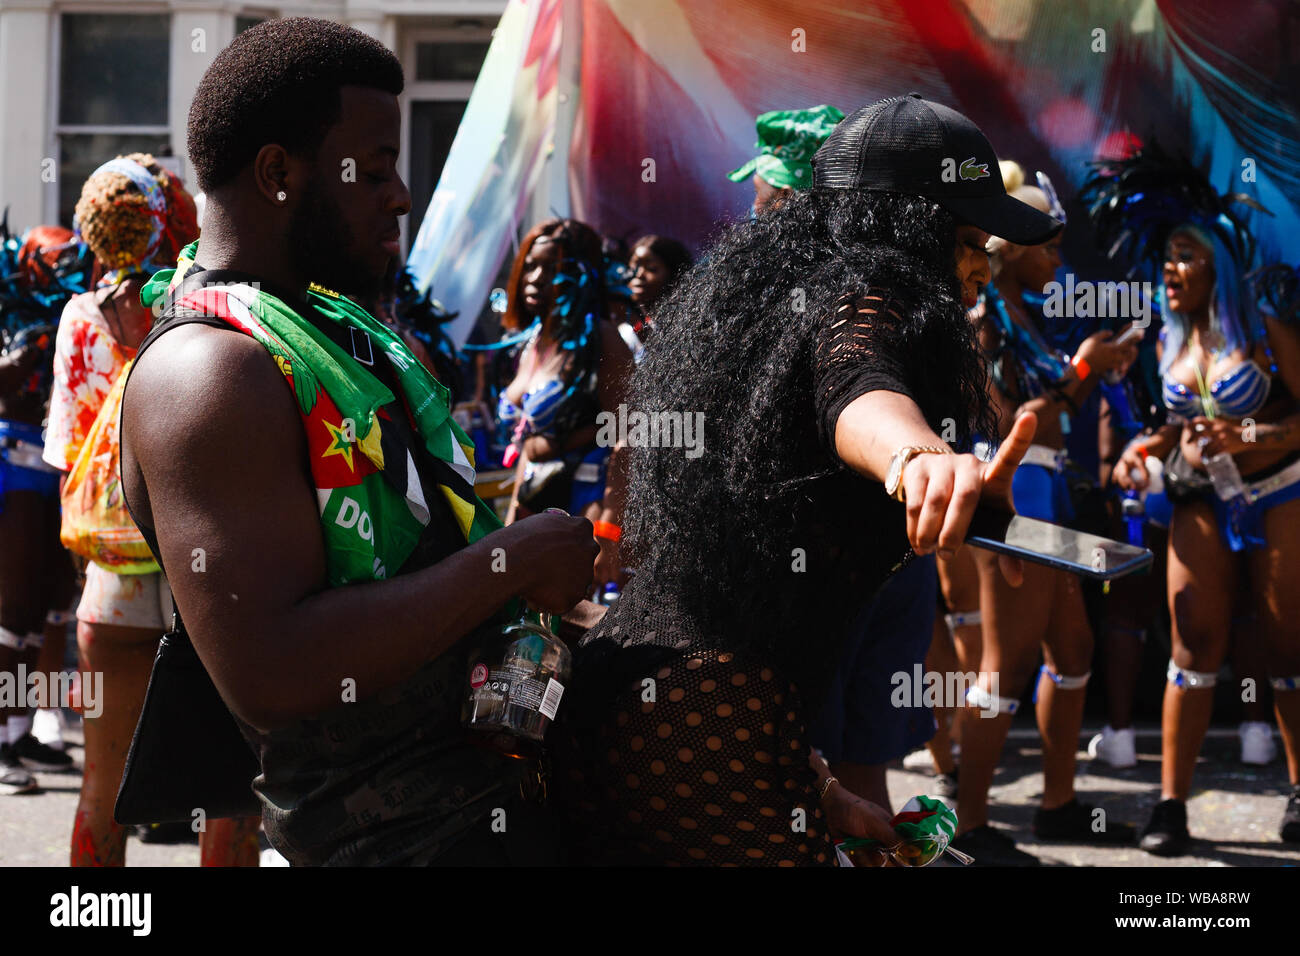 London, UK. 25th Aug, 2019. J'ouvert revellers dance at Ladbroke Grove, during the opening day of the 2019 Notting Hill Carnival.Up to a million people are expected to pack the streets of Notting Hill and surrounding areas over the course of the two day event. The annual celebration of Afro-Caribbean culture takes place each August bank holiday weekend. Credit: SOPA Images Limited/Alamy Live News Stock Photo